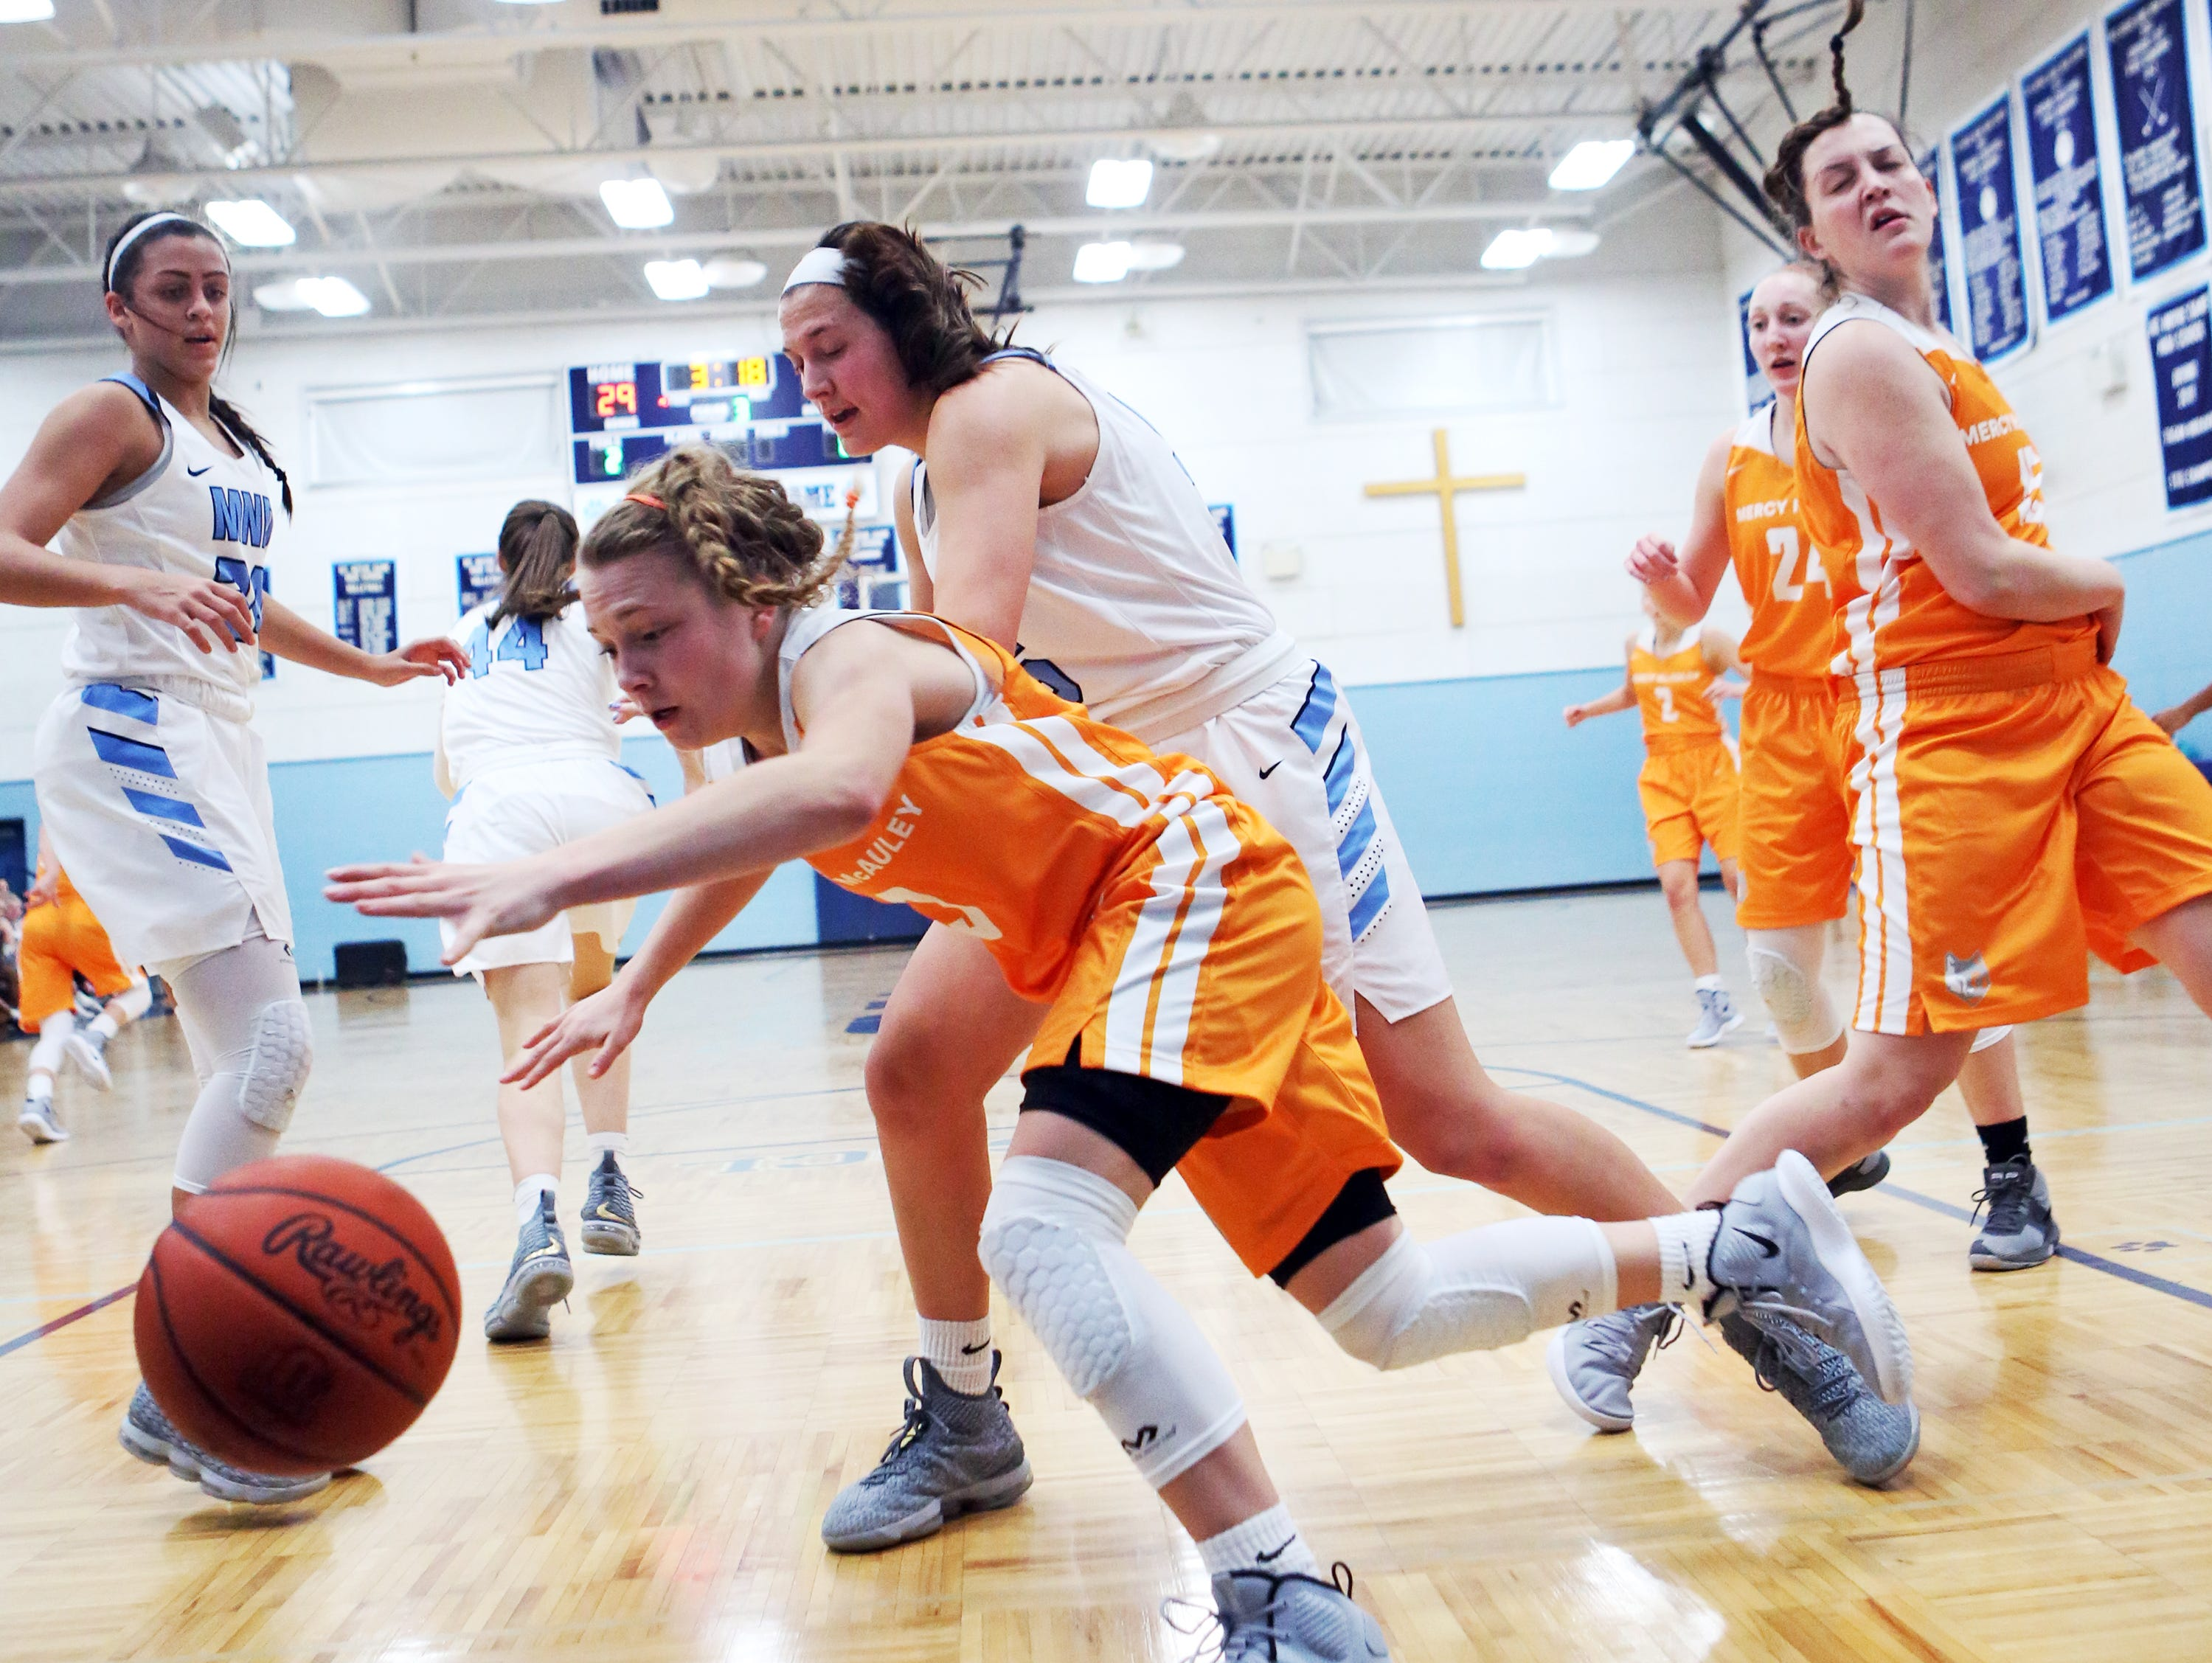 Mercy-McAuley guard Alexa Fleming drives the base line against MND. Mount Notre Dame defeated Mercy-McAuley 53-32.